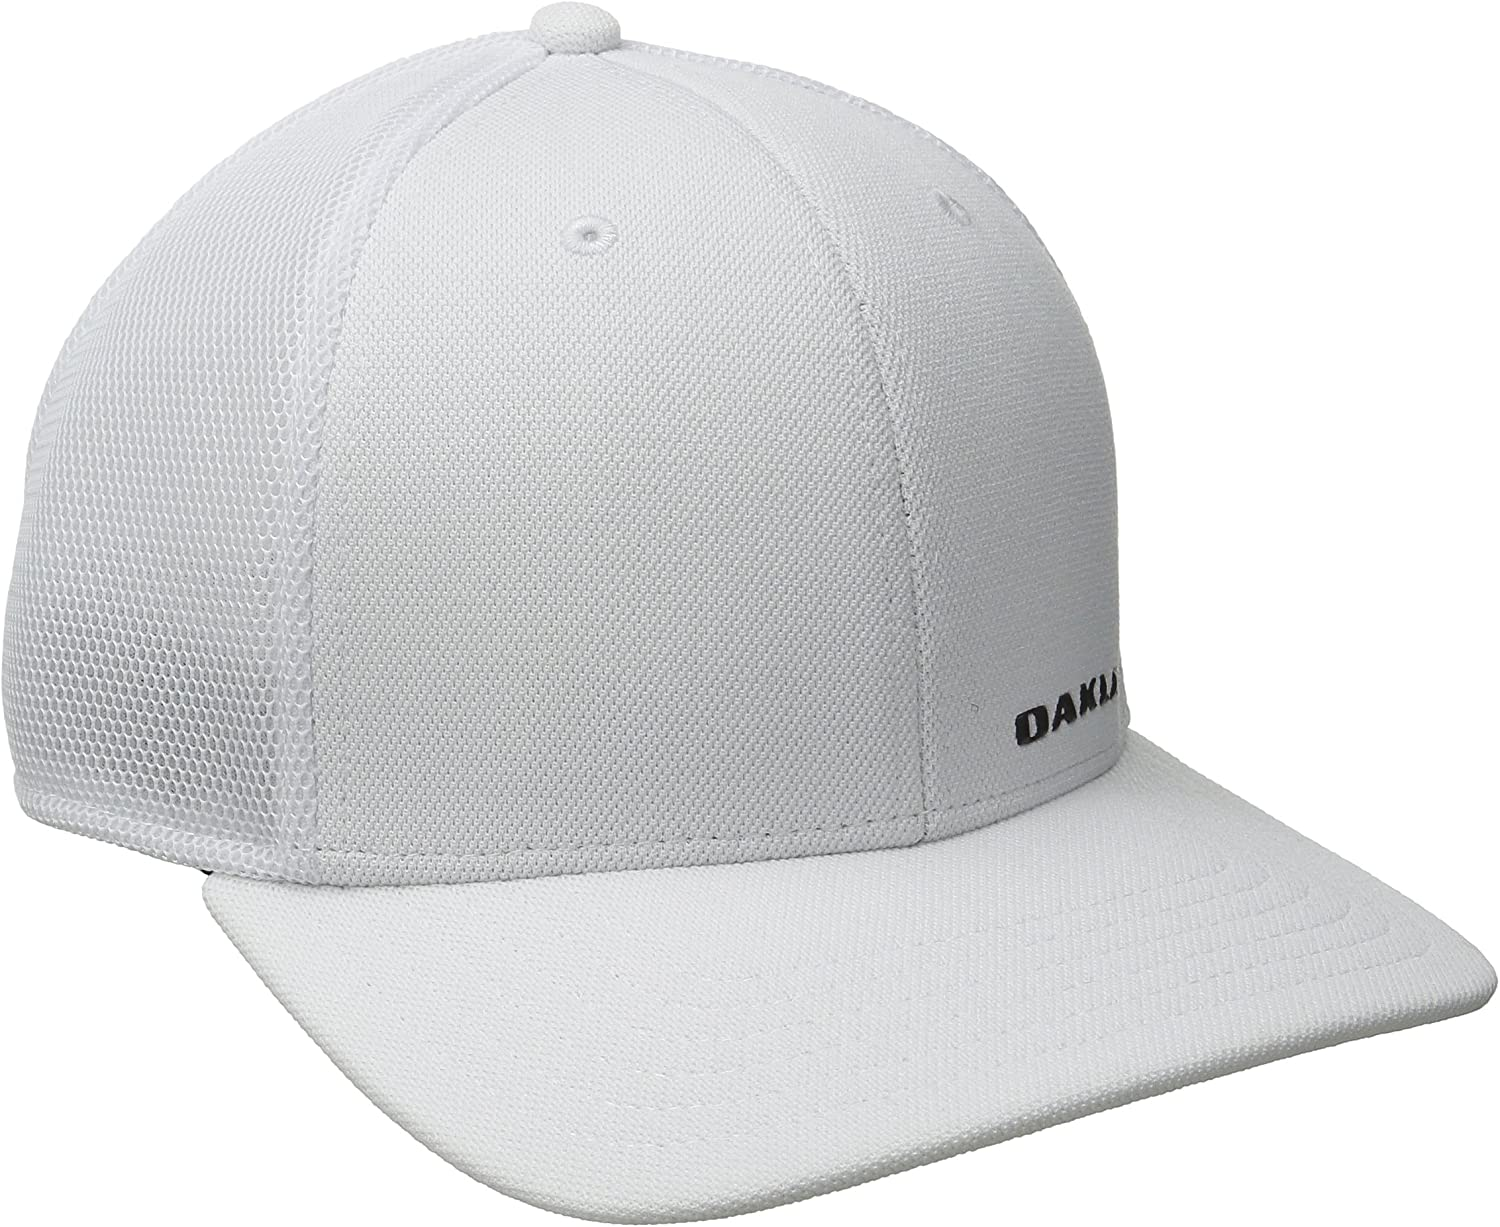 Oakley Men's Silicon Bark Trucker 4.0: Clothing